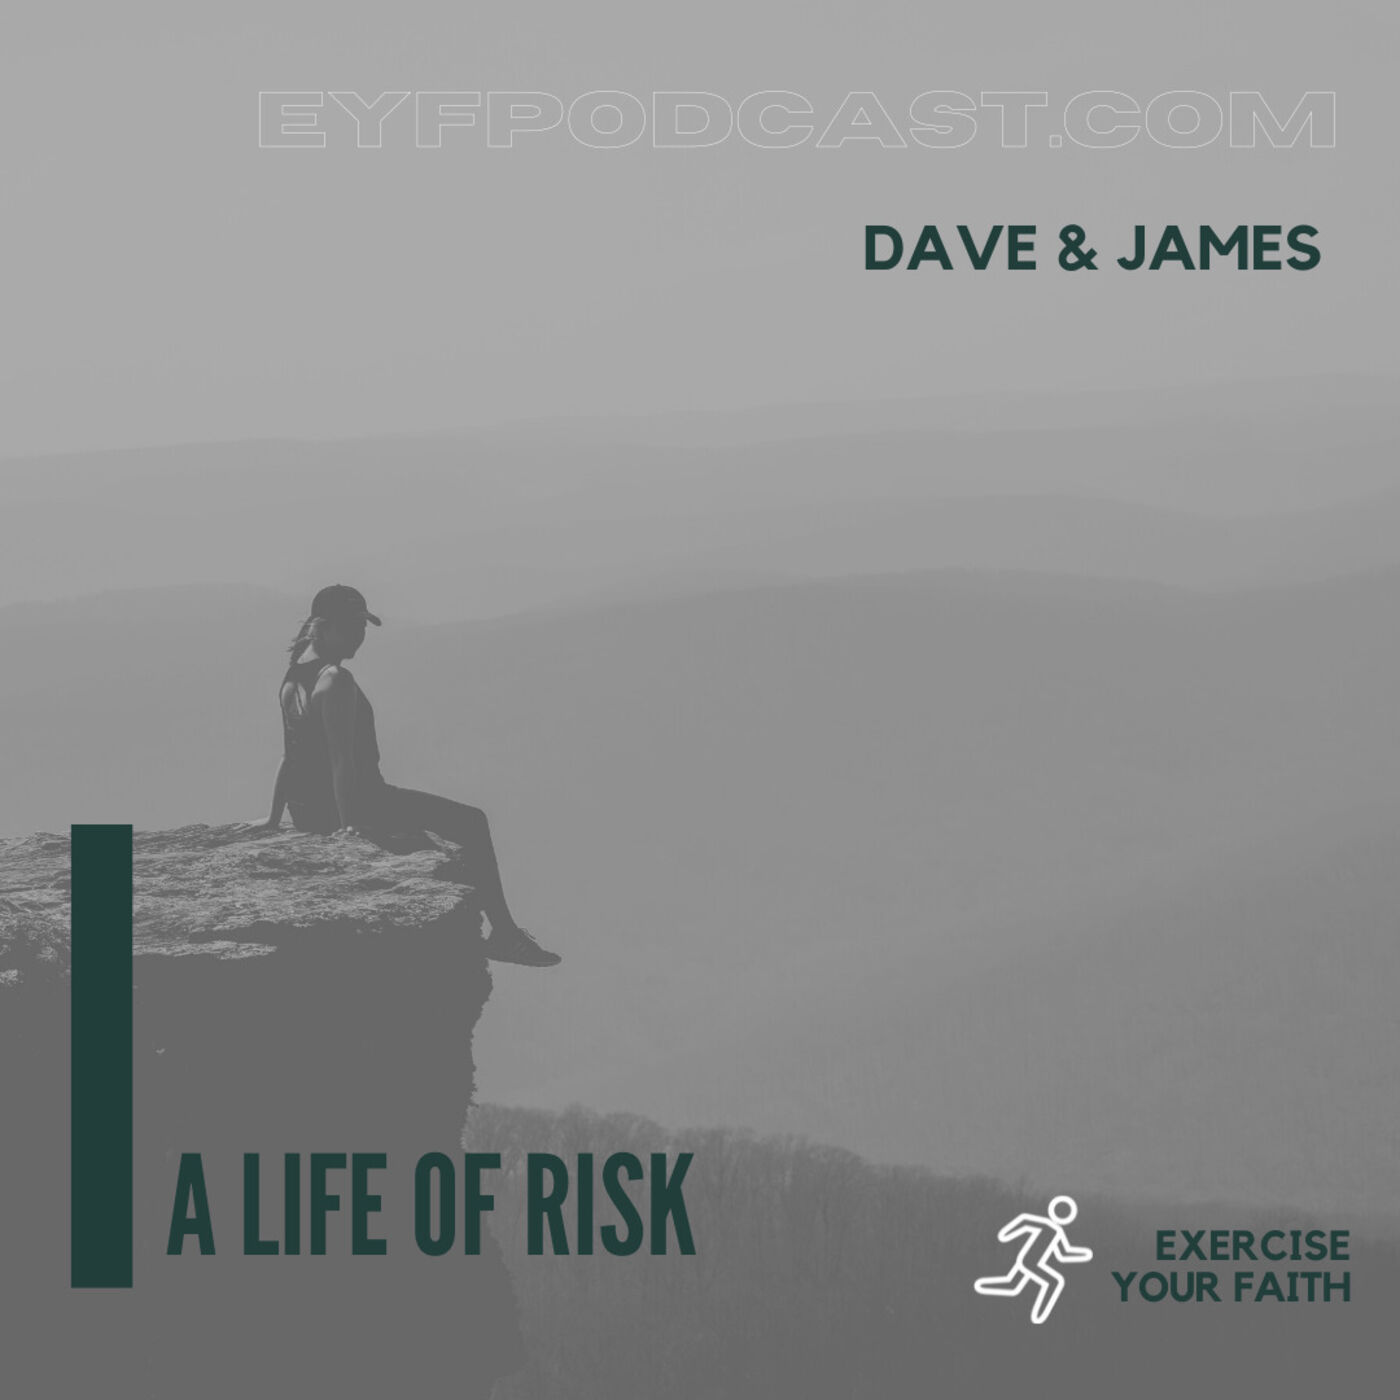 EYFPodcast- Exercise Your Faith and be a Risk Taker for God.